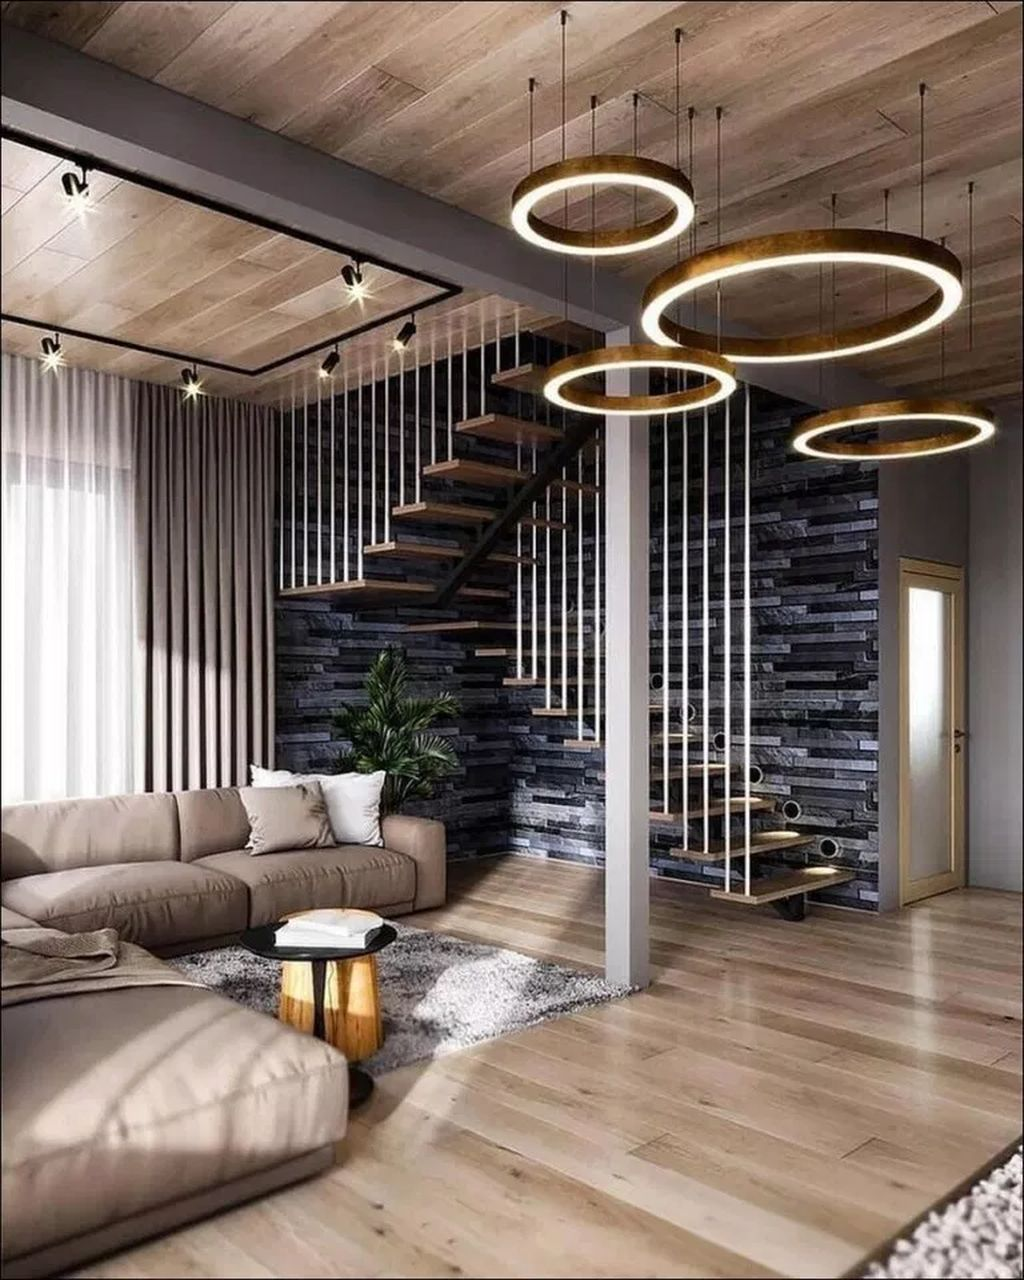 Cool 40 Wonderful Staircase Design Ideas That Inspires Living Room | Stair Room Exterior Design | 3 Floor Building | Box Type | Brick | Open Plan | Amazing